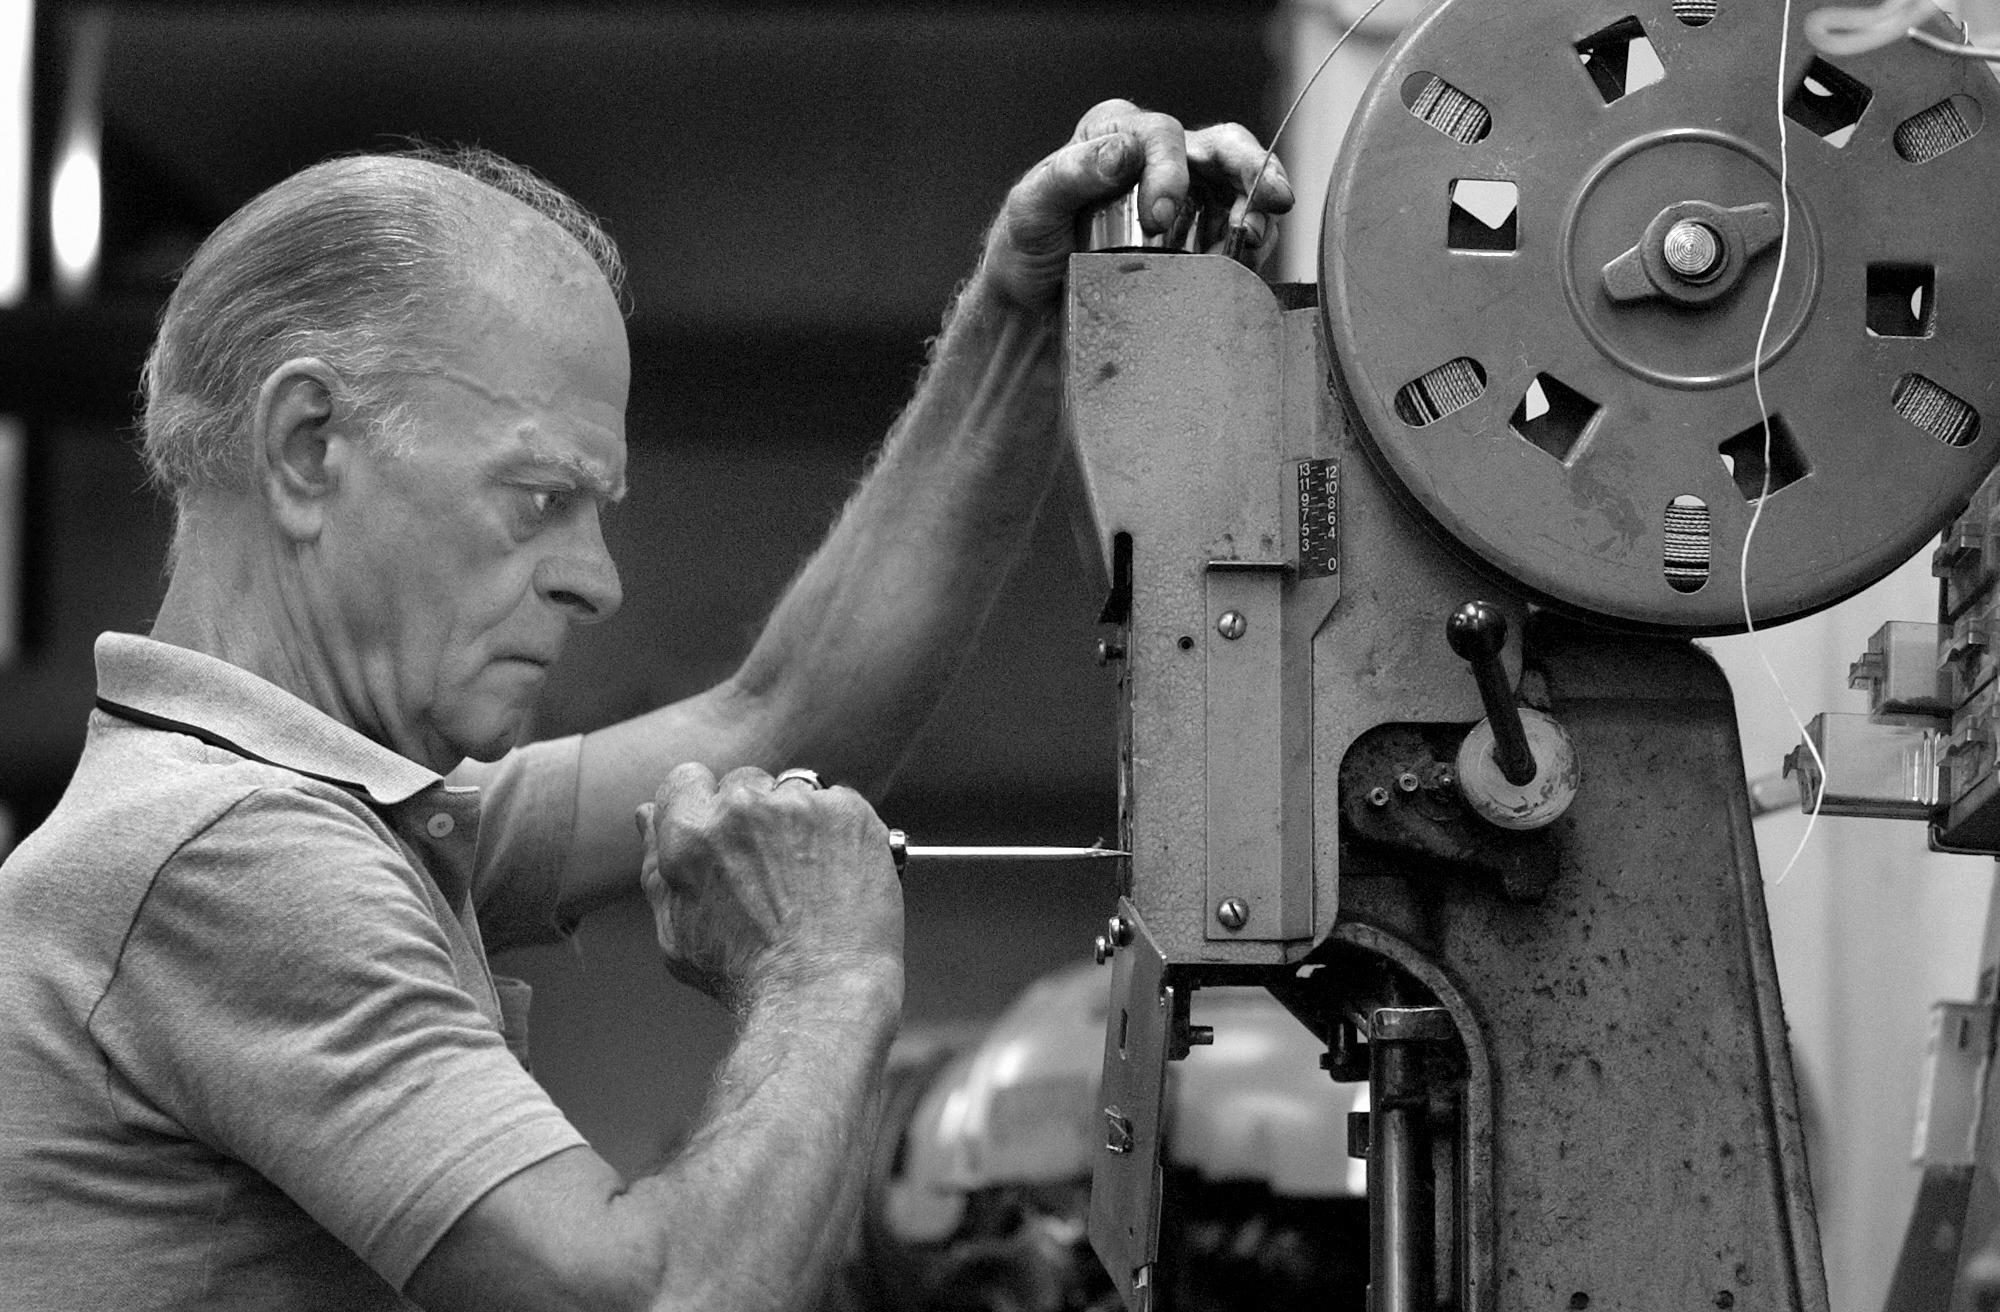 ROBERT SUMNER / HERALD NEWS STAFF PHOTOGRAPHER 08.24.04 Bob Kwasigroch makes an adjustment to an automatic nailer at Andy's Shoe Repair on East Cass Street in Joliet. He started repairing shoes when he was 17. His father, Andy Kwasigroch, started the business at The White Store, shining shoes when he was 15.